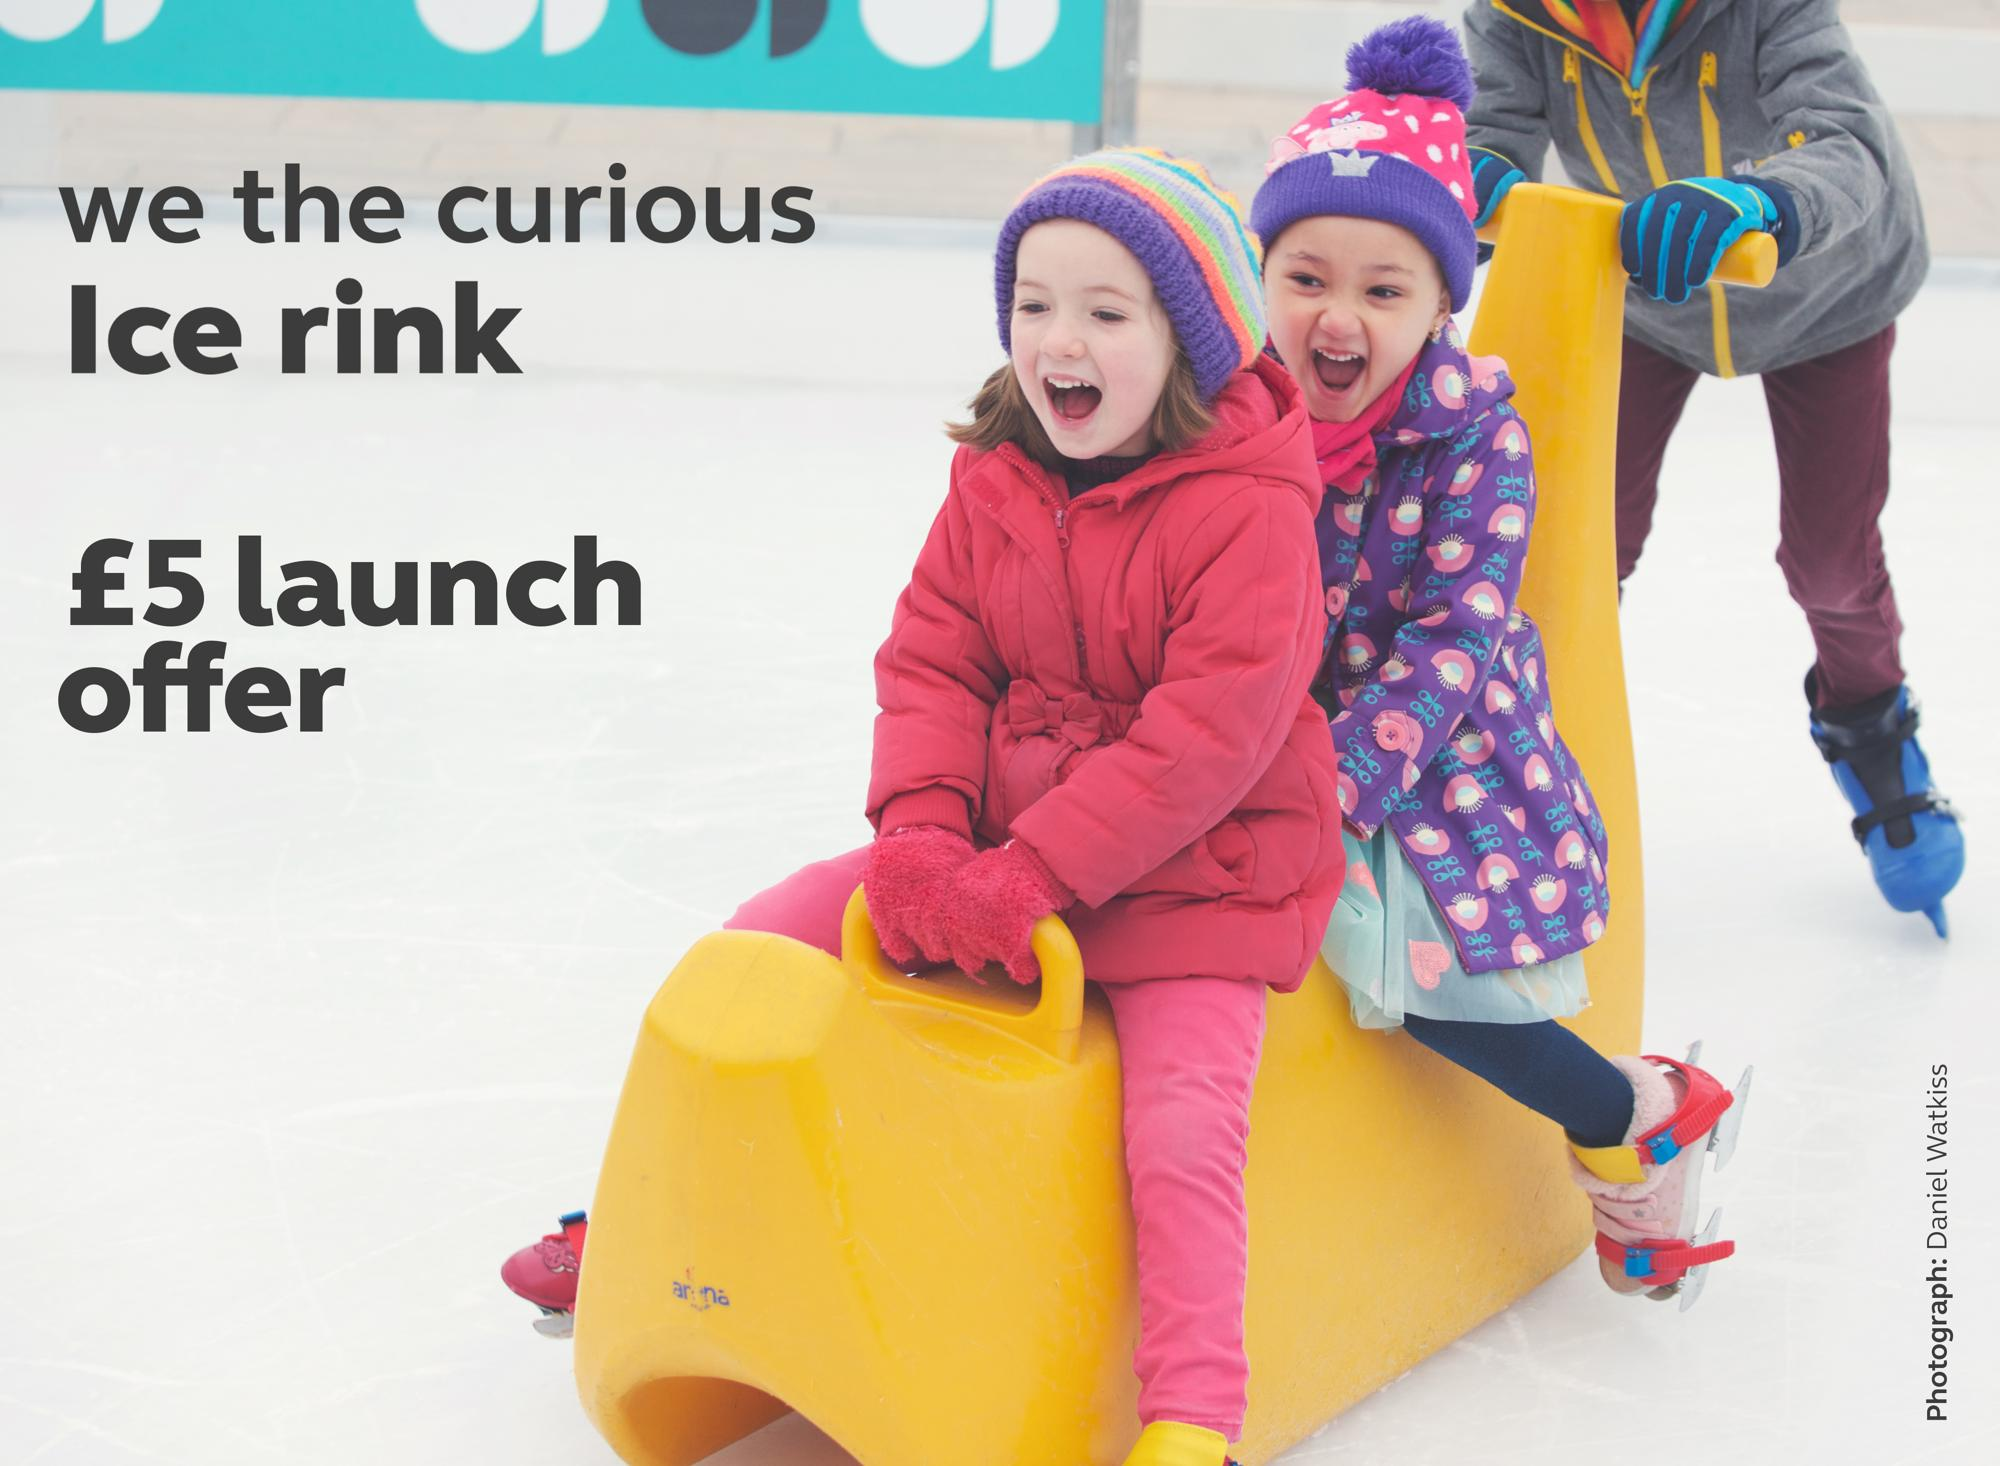 Ice rink launch £5 offer